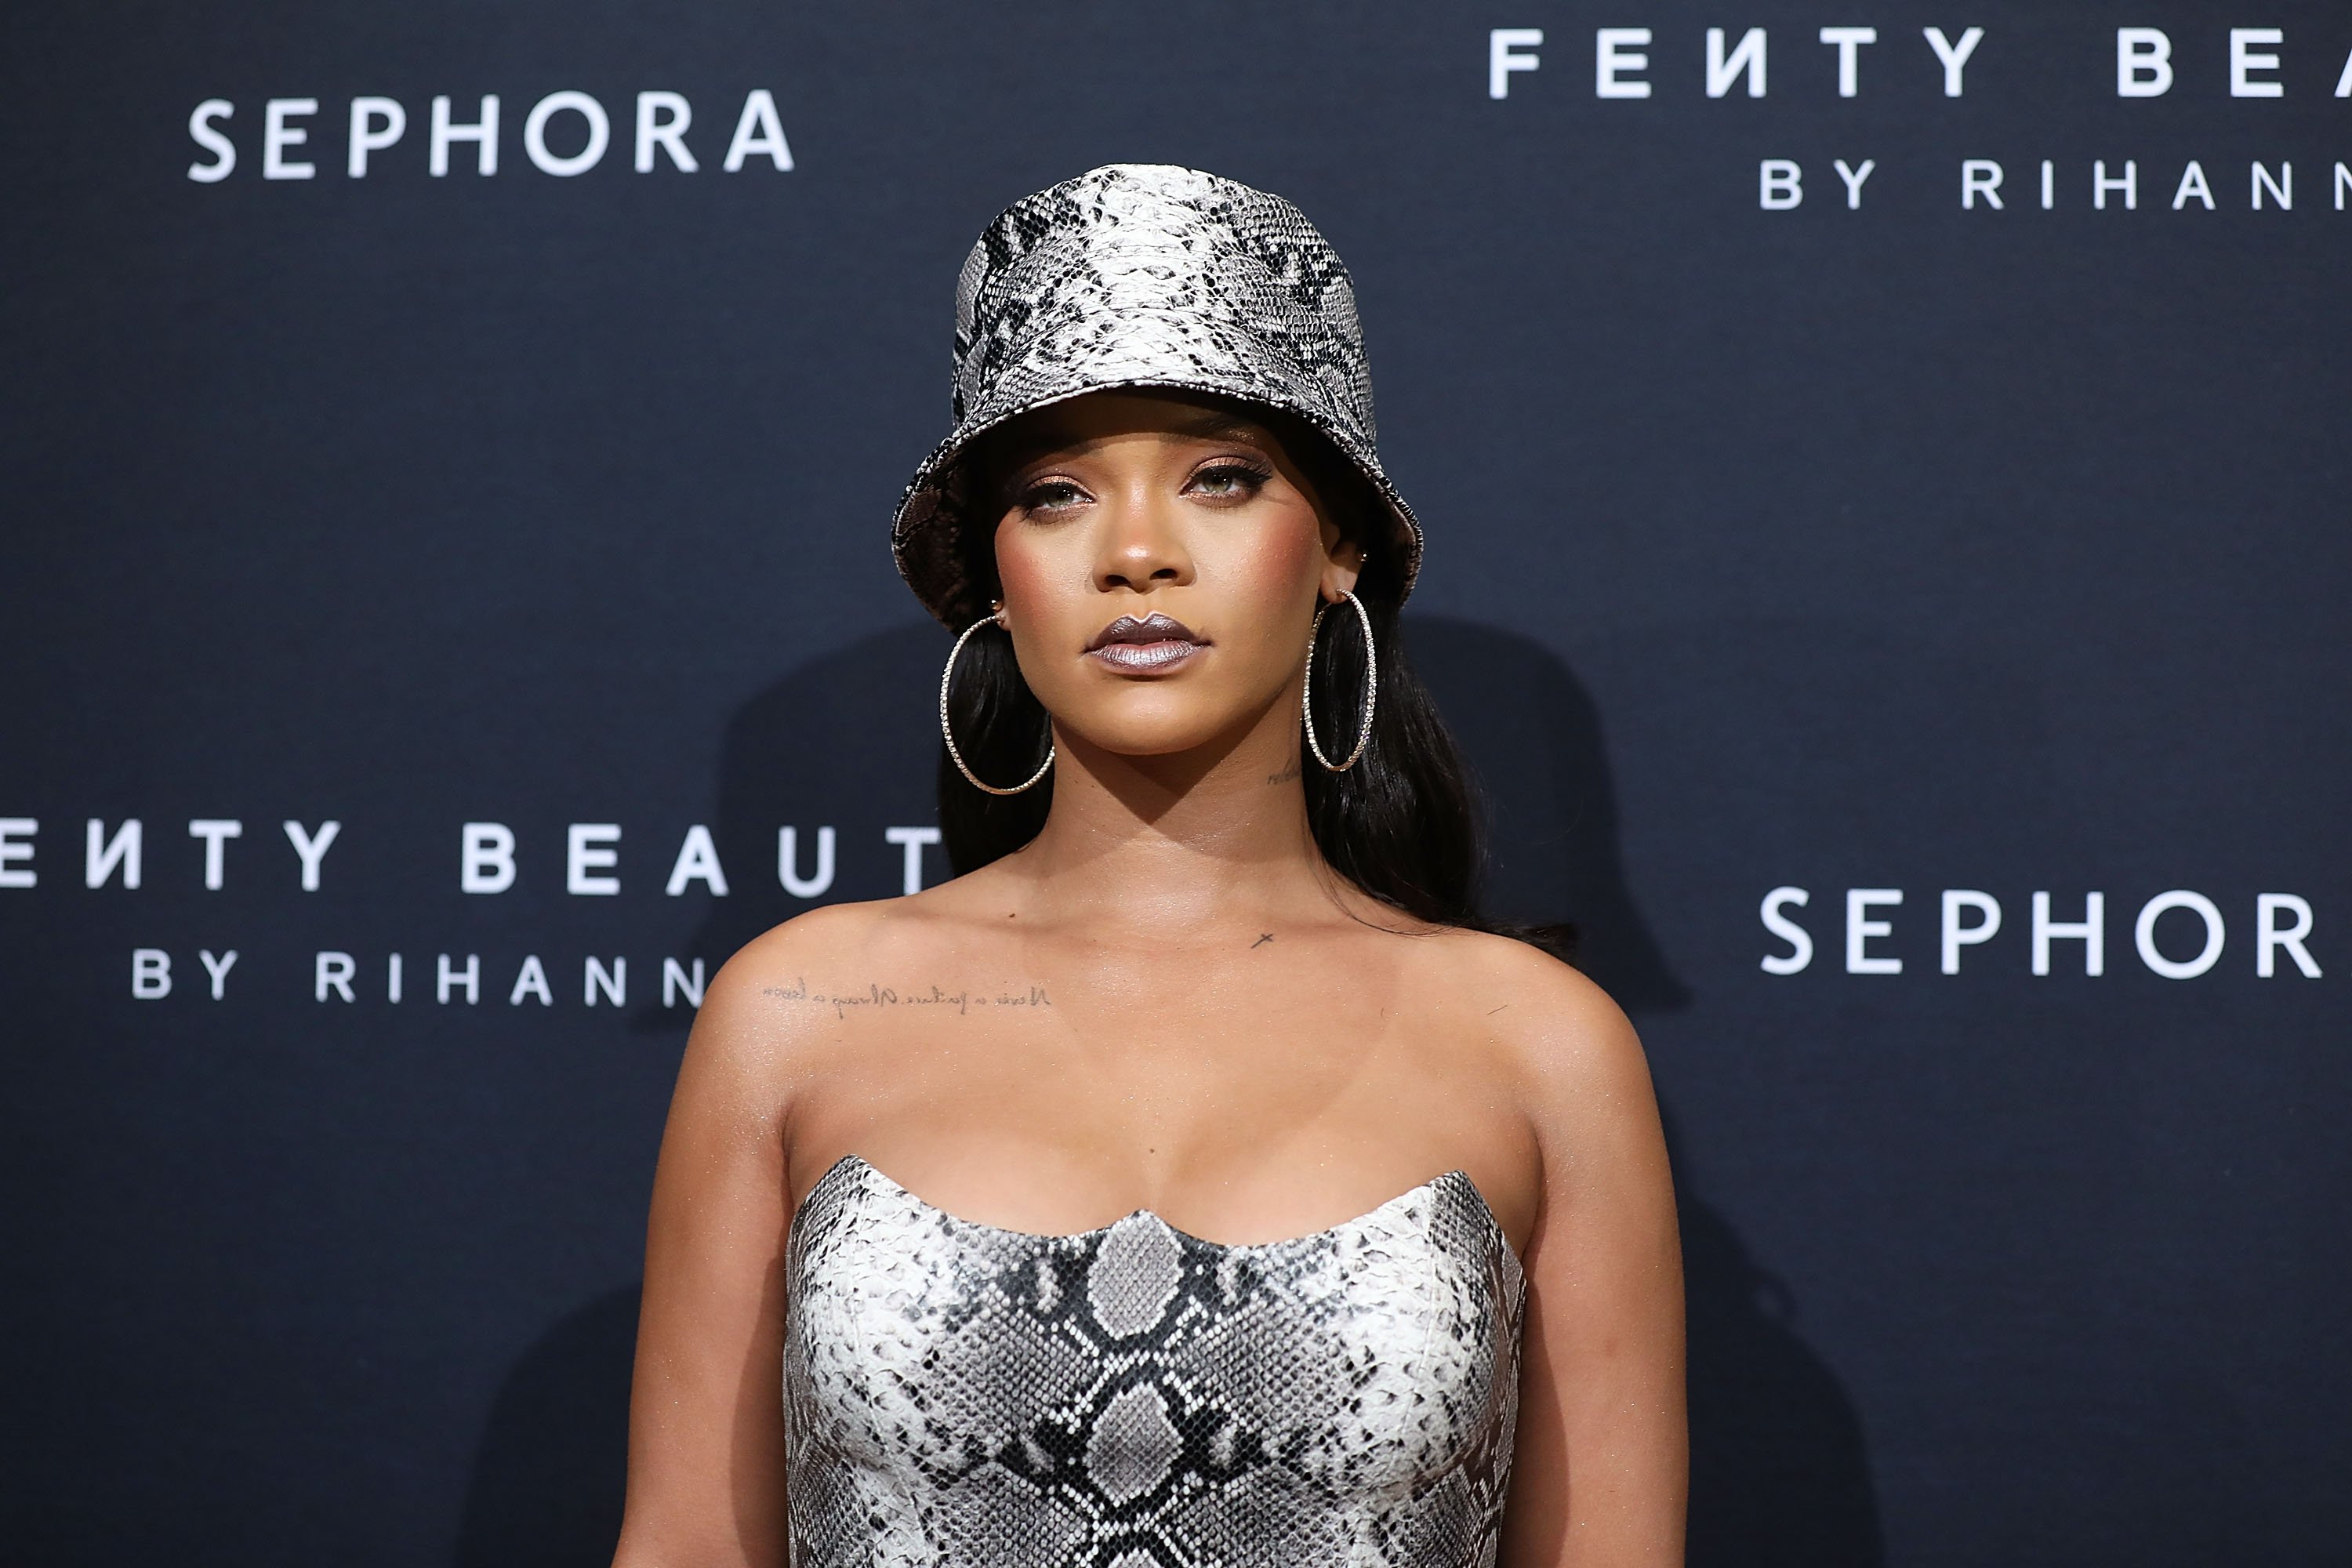 Rihanna attends the Fenty Beauty by Rihanna Anniversary Event at Overseas Passenger Terminal on October 3, 2018. | Photo: GettyImages